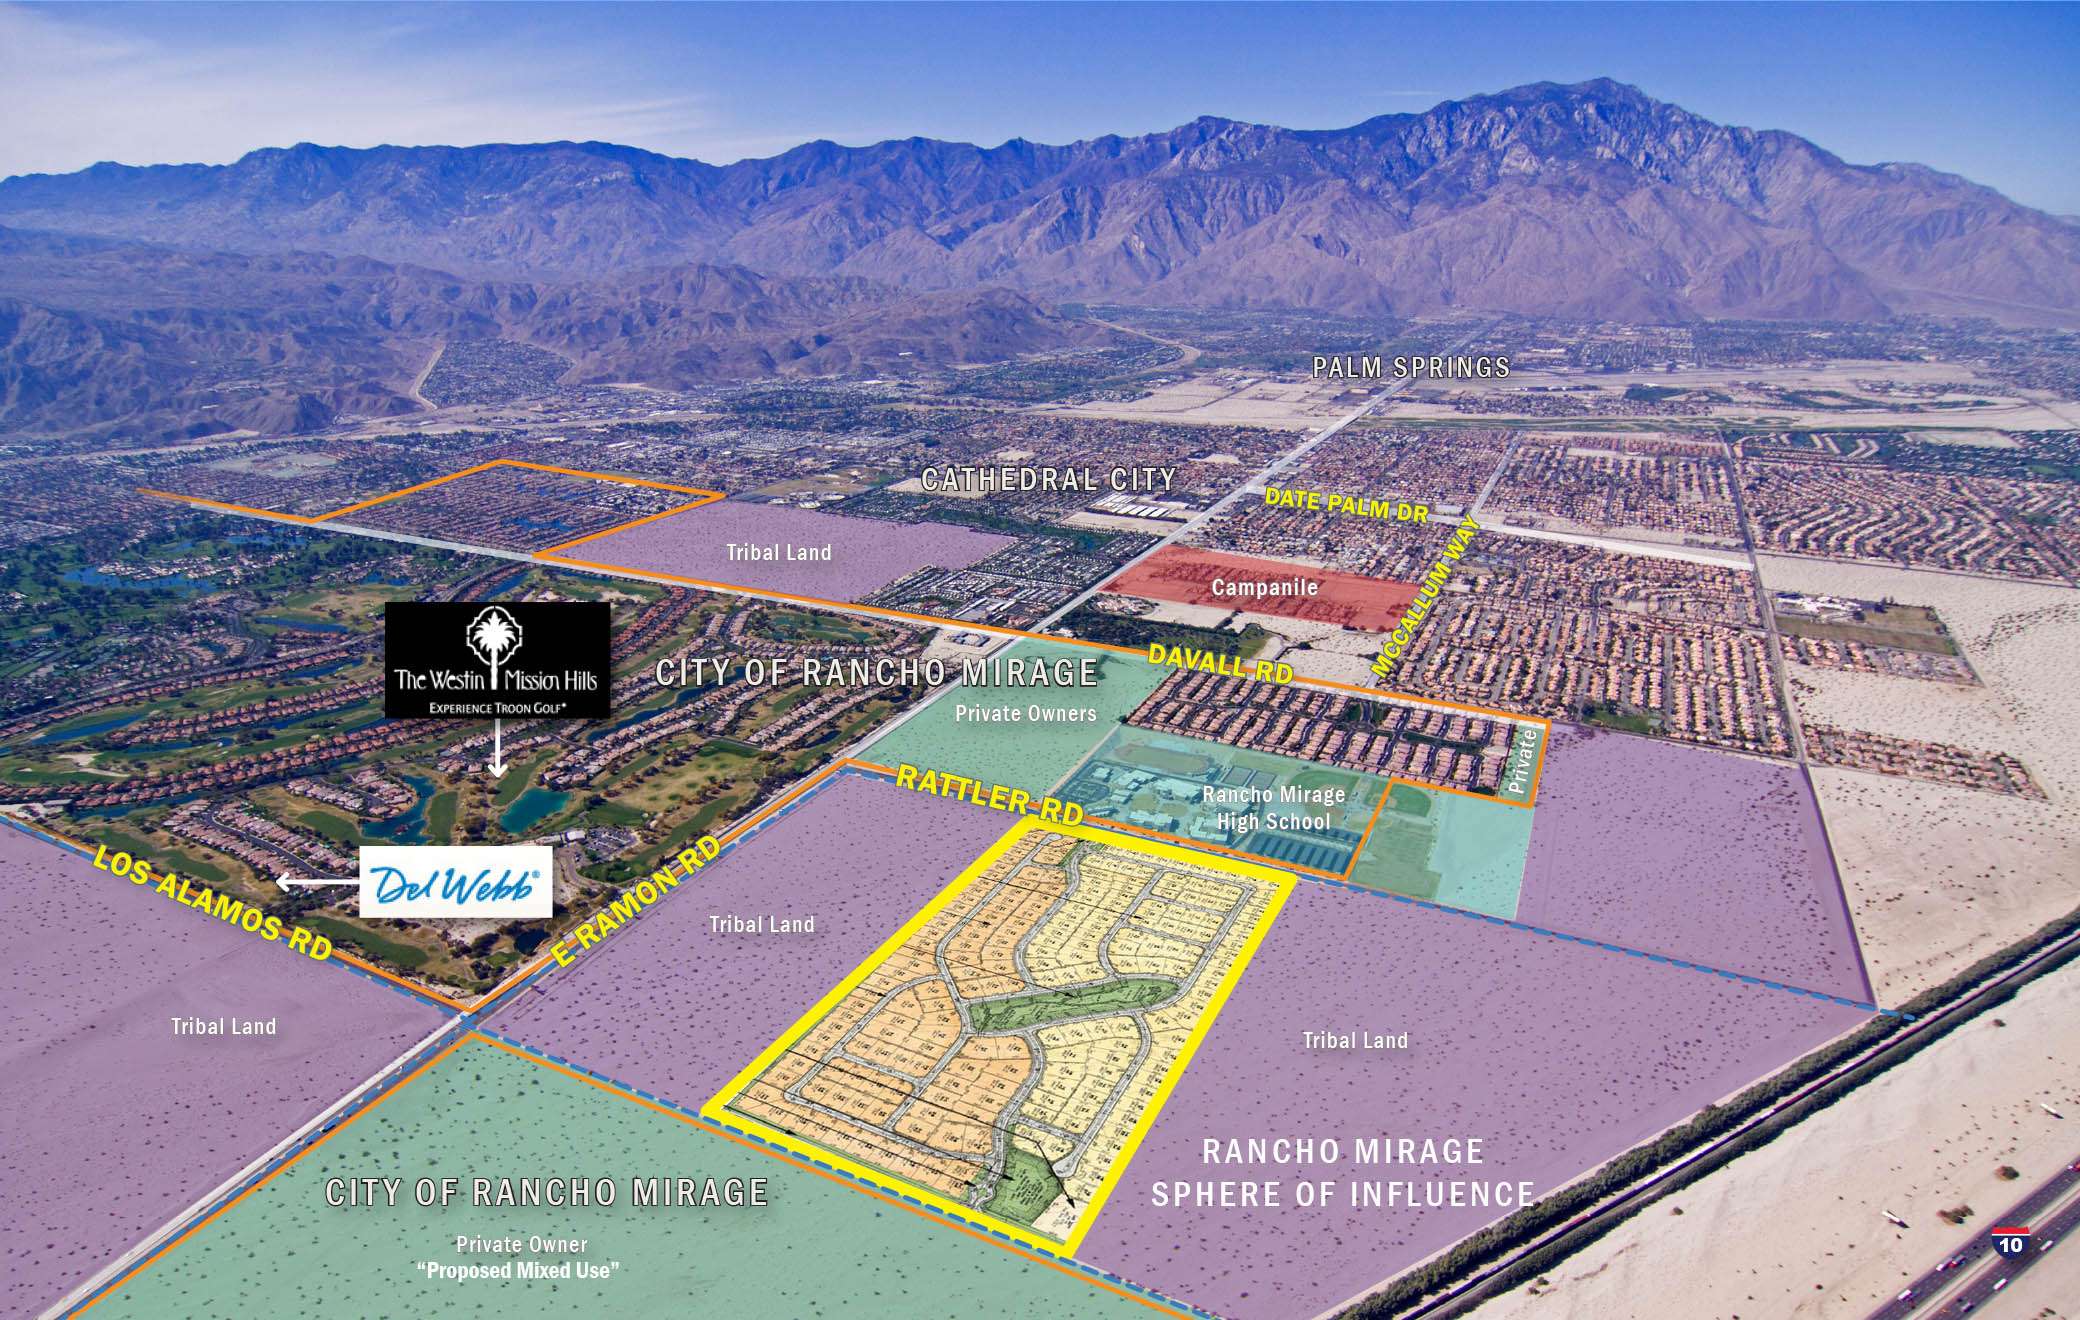 RanchoMirage206LotsPSUSDPropPage2080x1320 RanchoMirage206LotsPSUSDPhoto12080x1320 RanchoMirage206LotsPSUSDLocation2080x1320 206 Approved